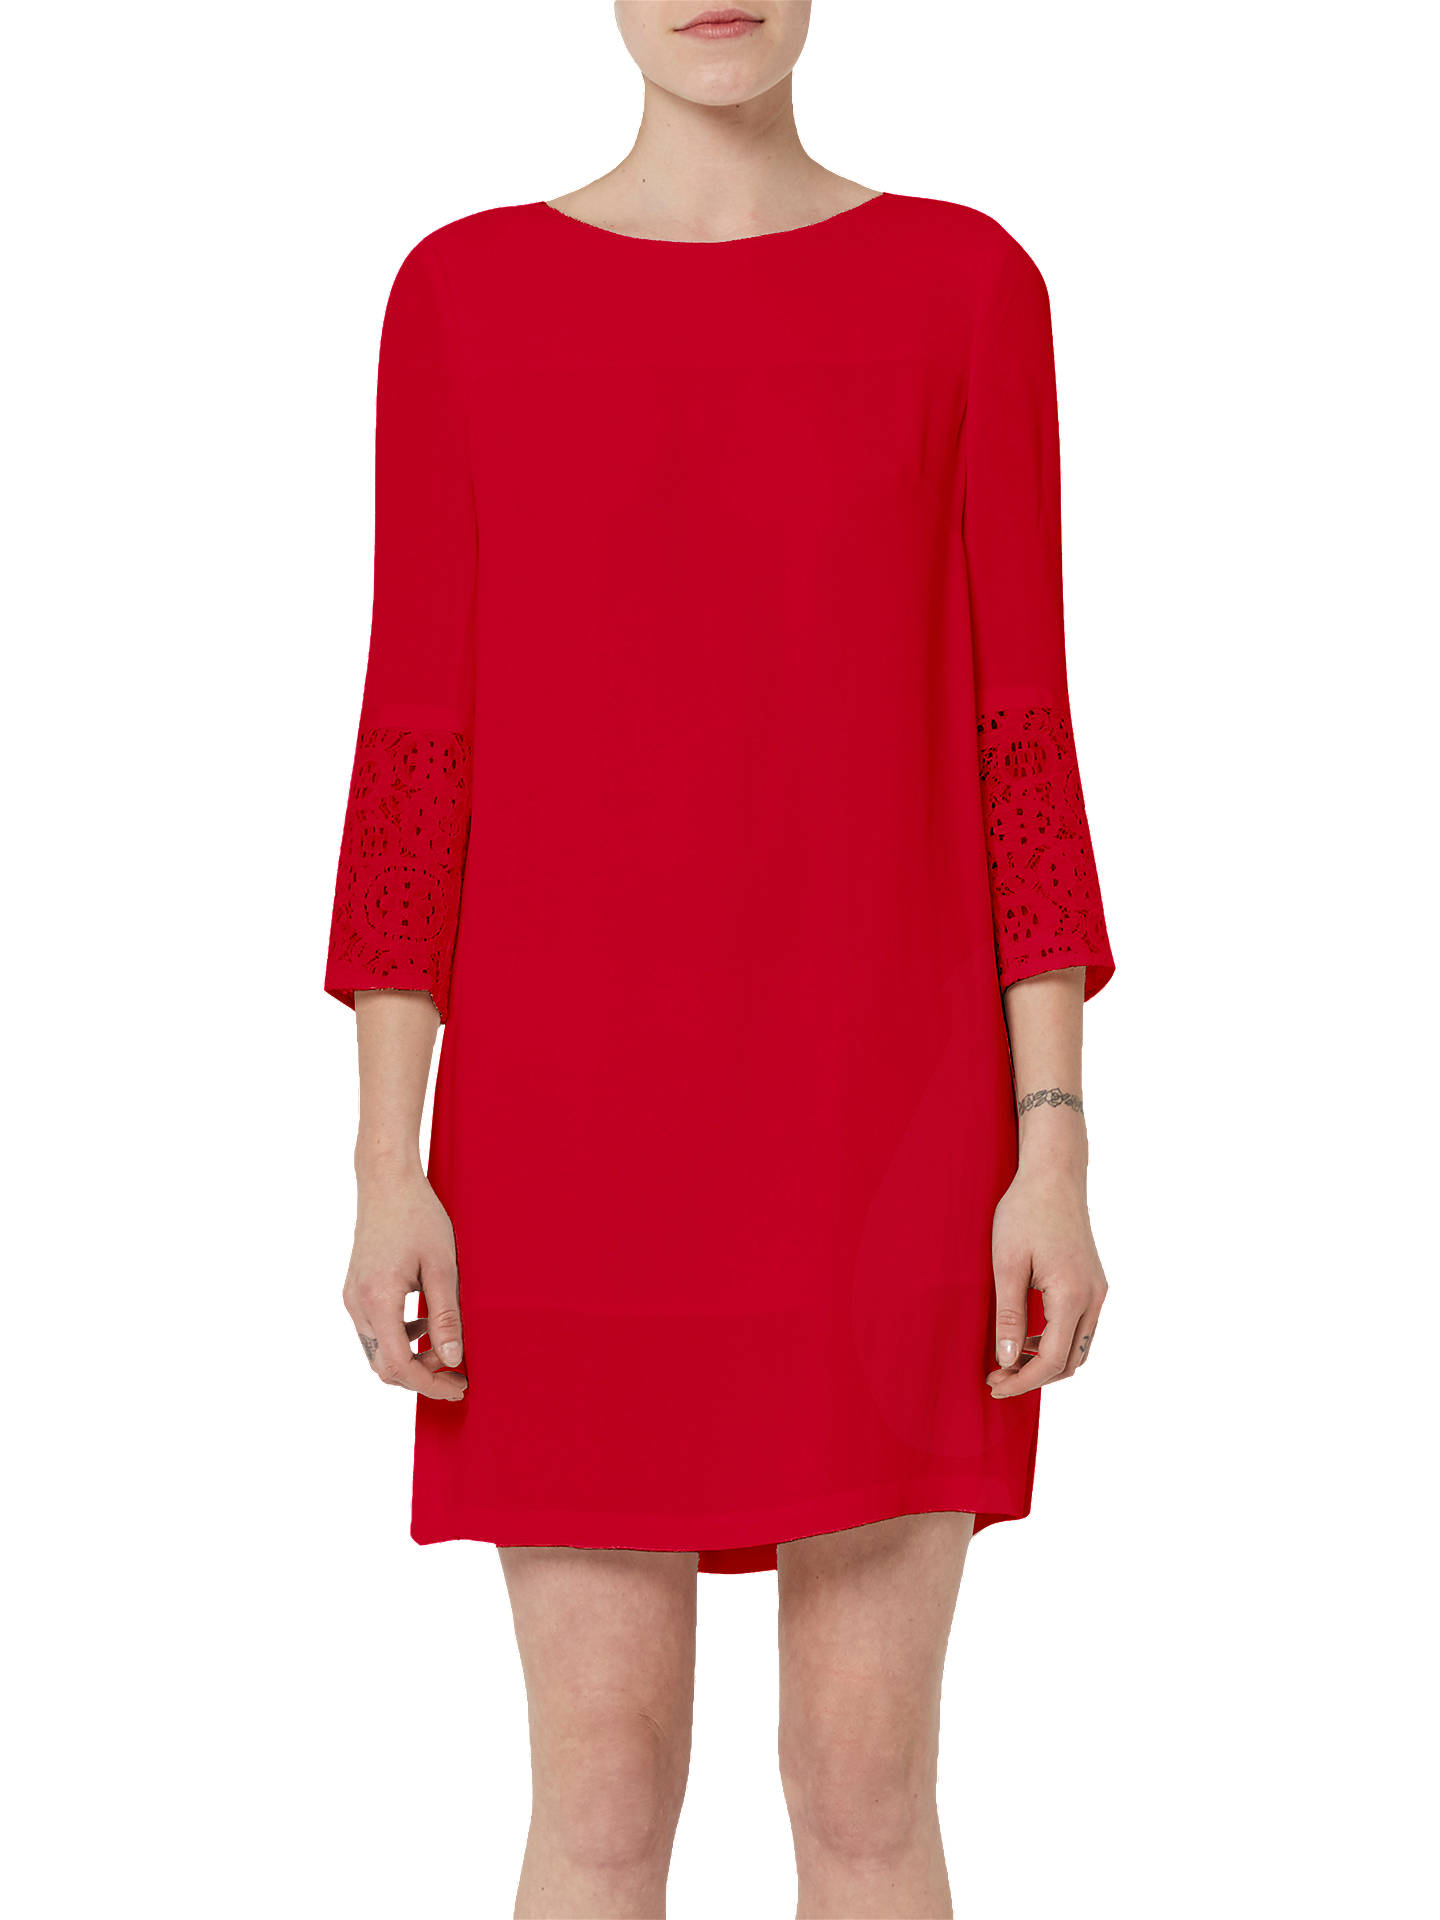 56cc9178a86 Buy French Connection Ensor Crepe Tunic Dress, Blazer Red, 8 Online at  johnlewis.